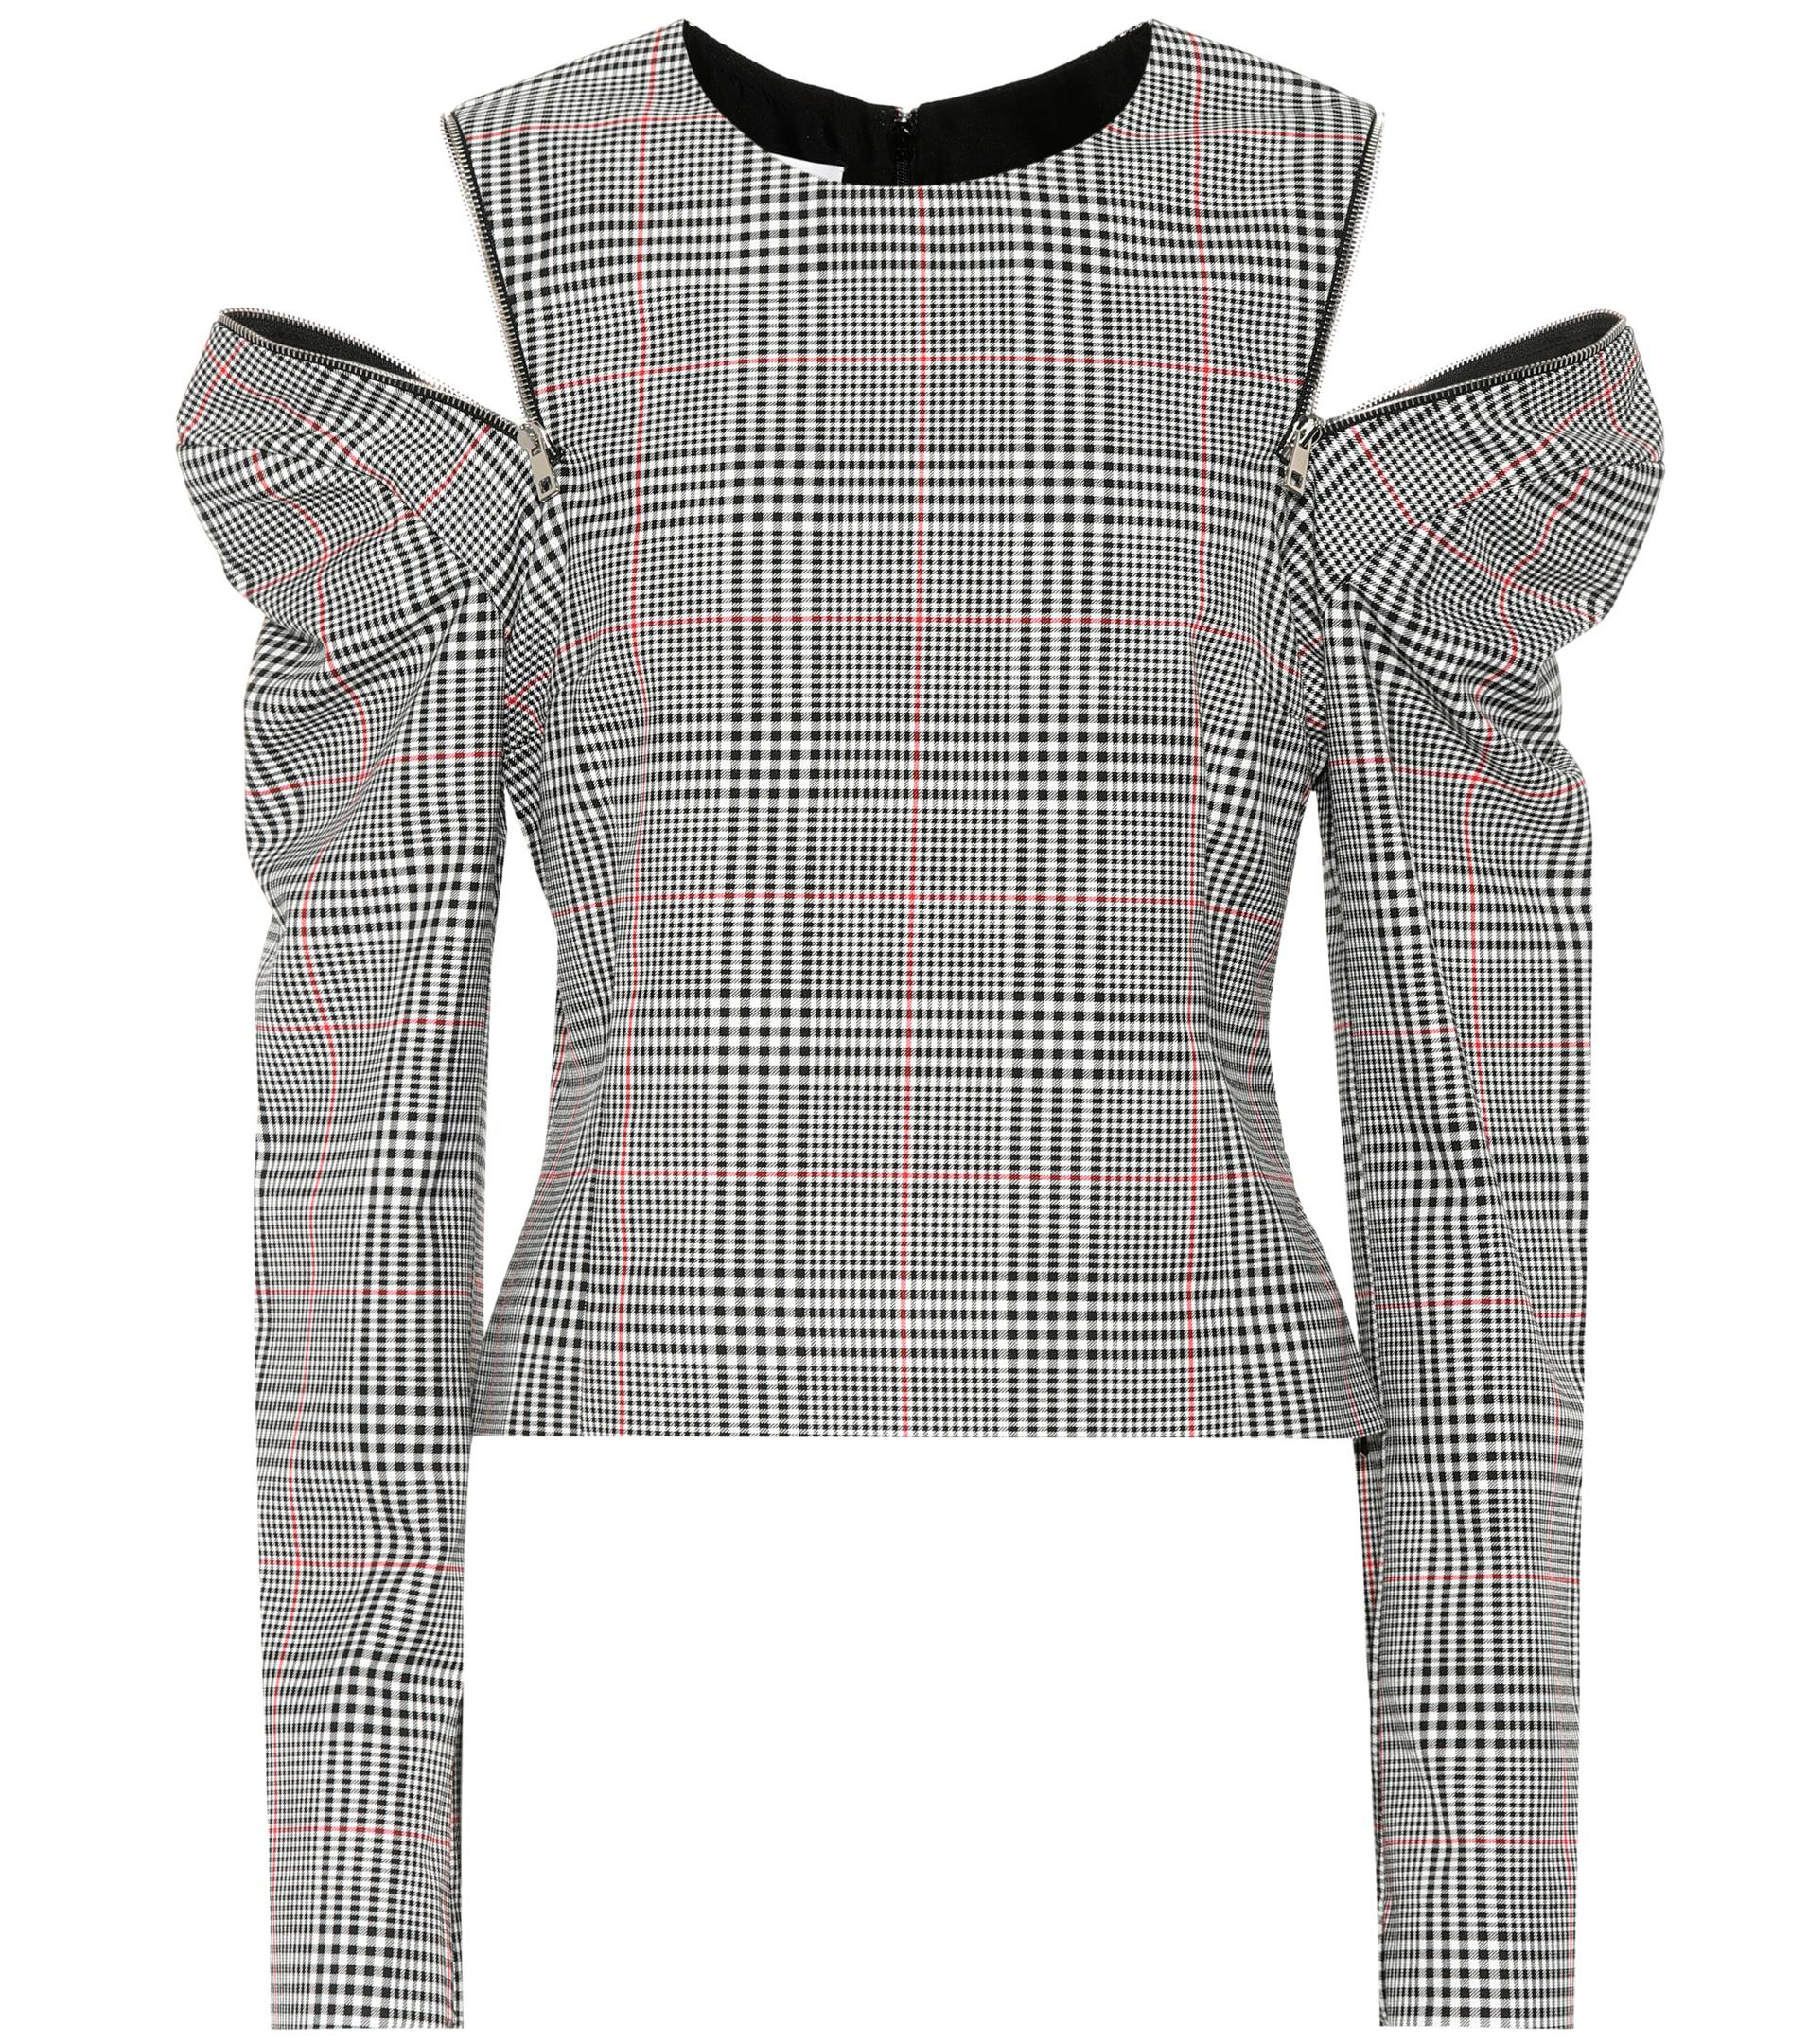 Cheap Choice Glen plaid top Monse Clearance Outlet Store Clearance Wide Range Of ovtJZ